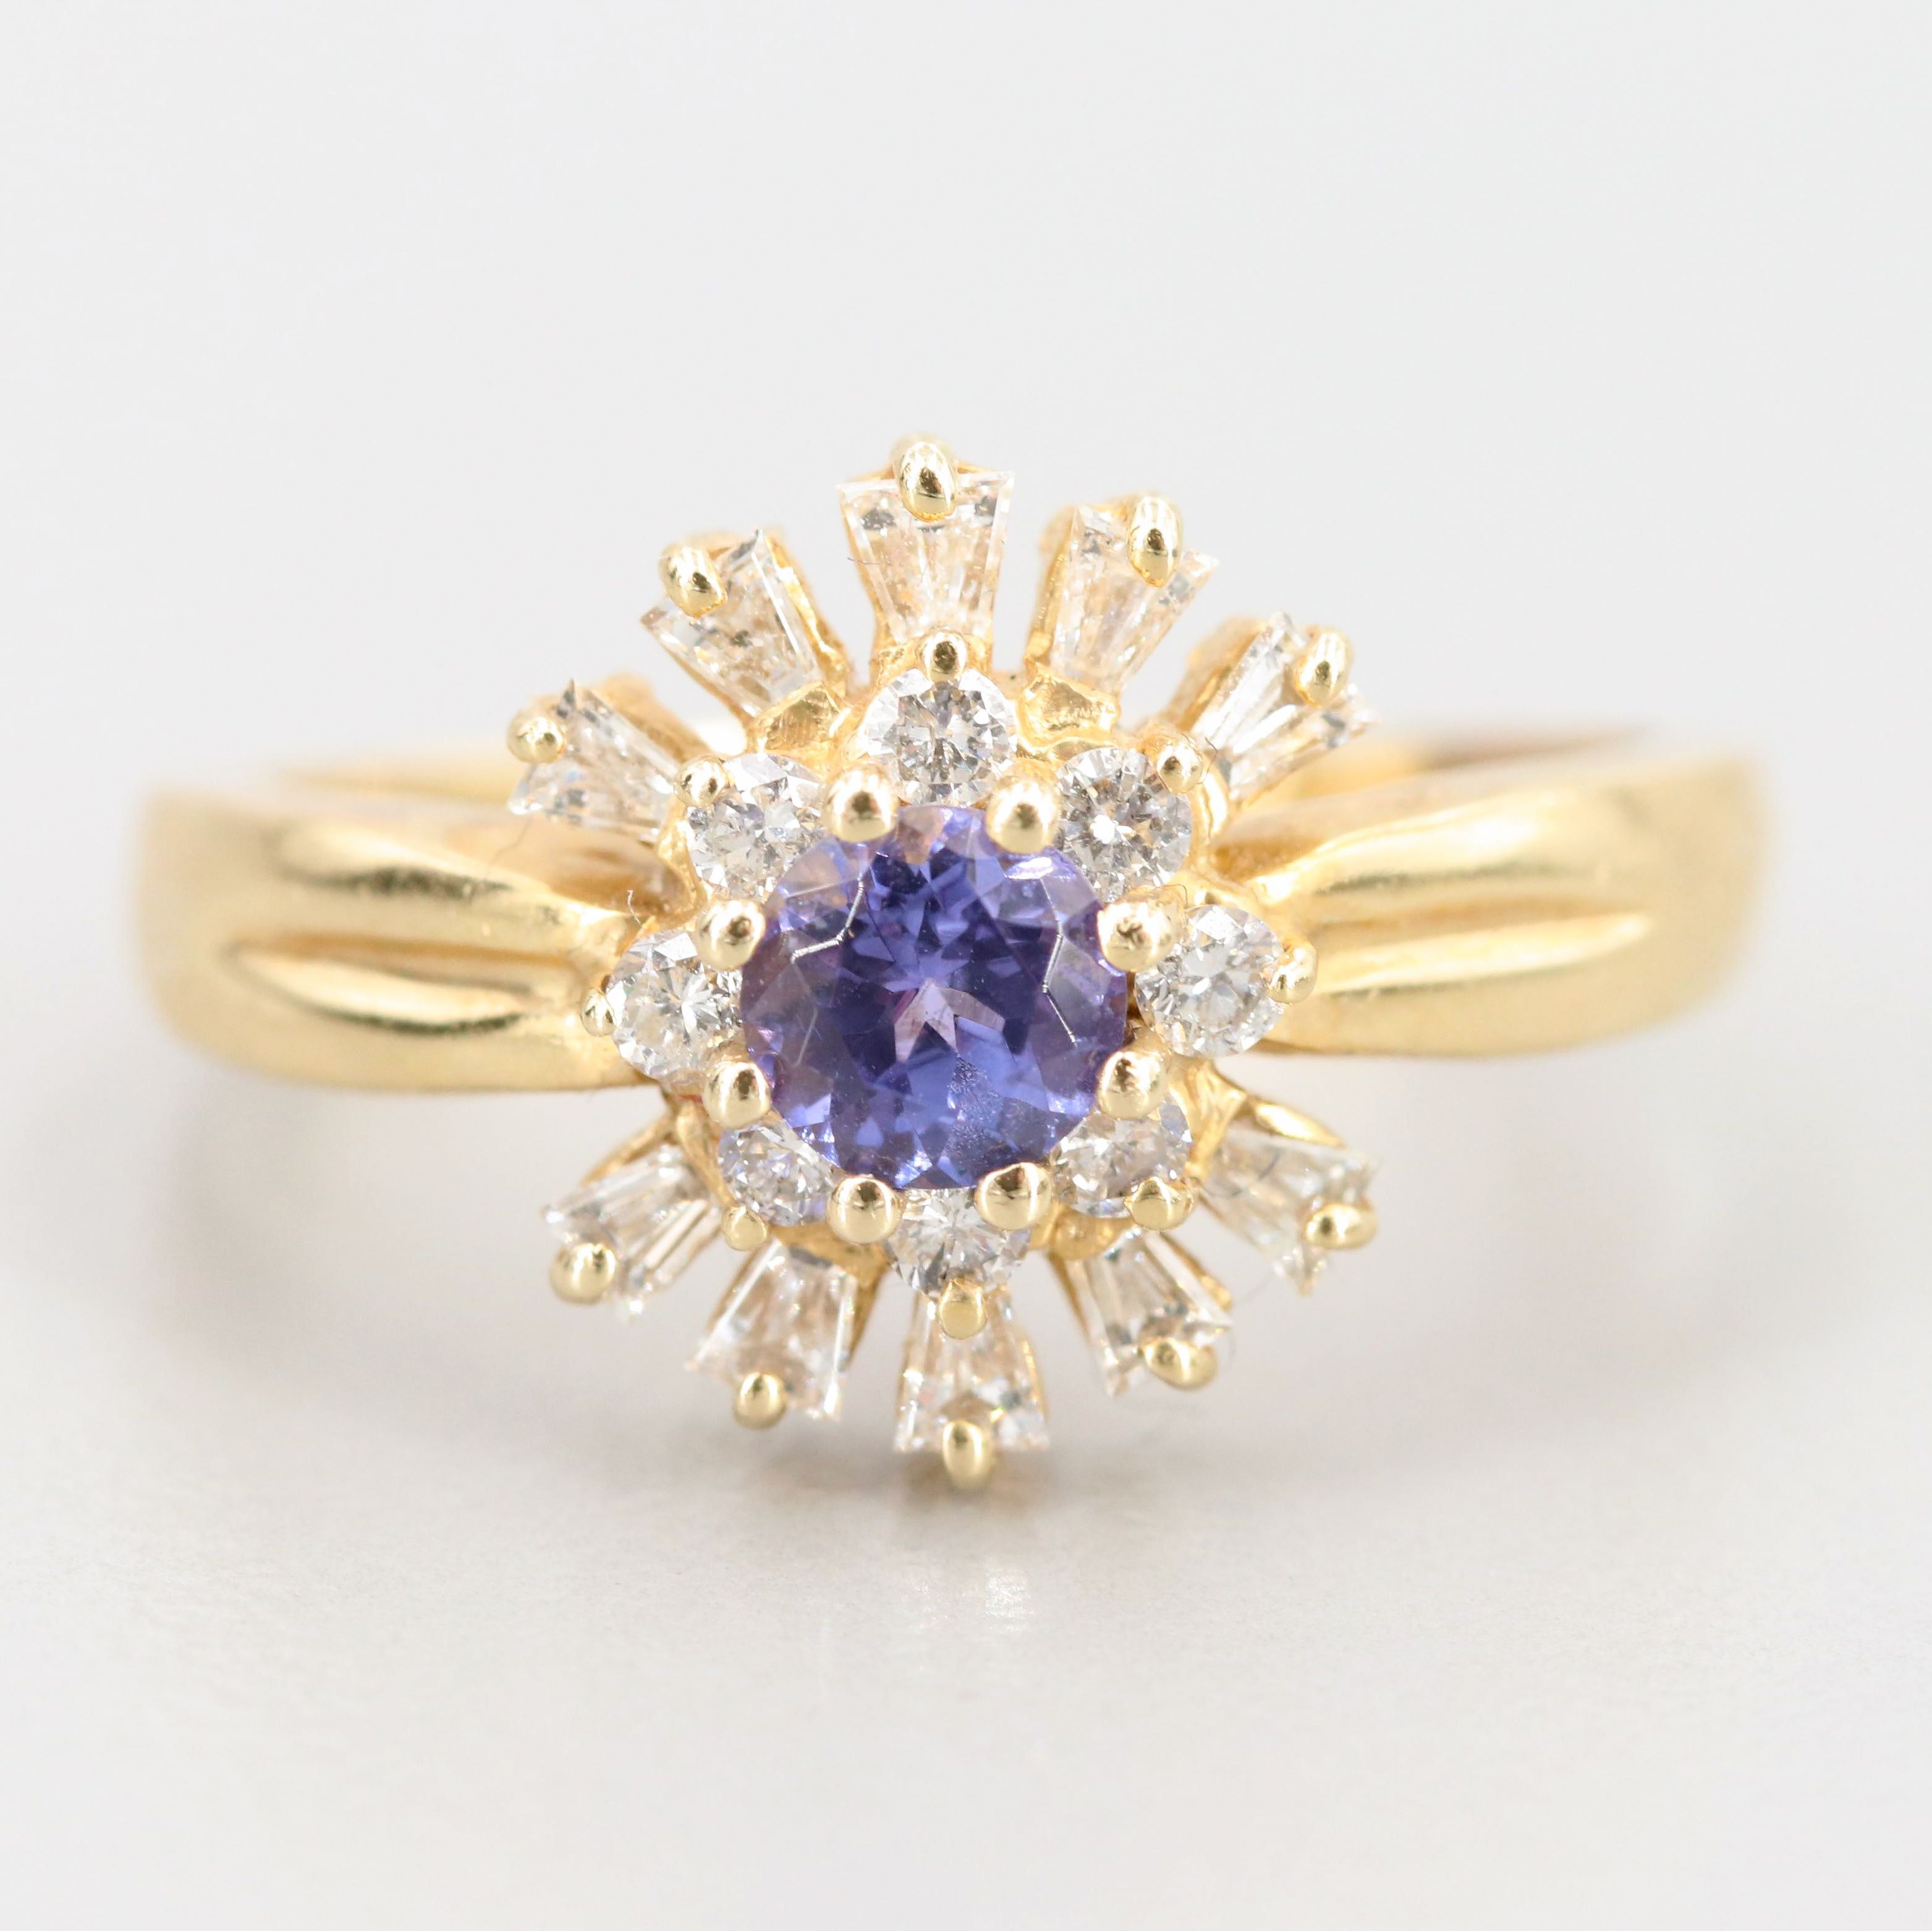 Vintage 14K Yellow Gold Tanzanite and Diamond Ring